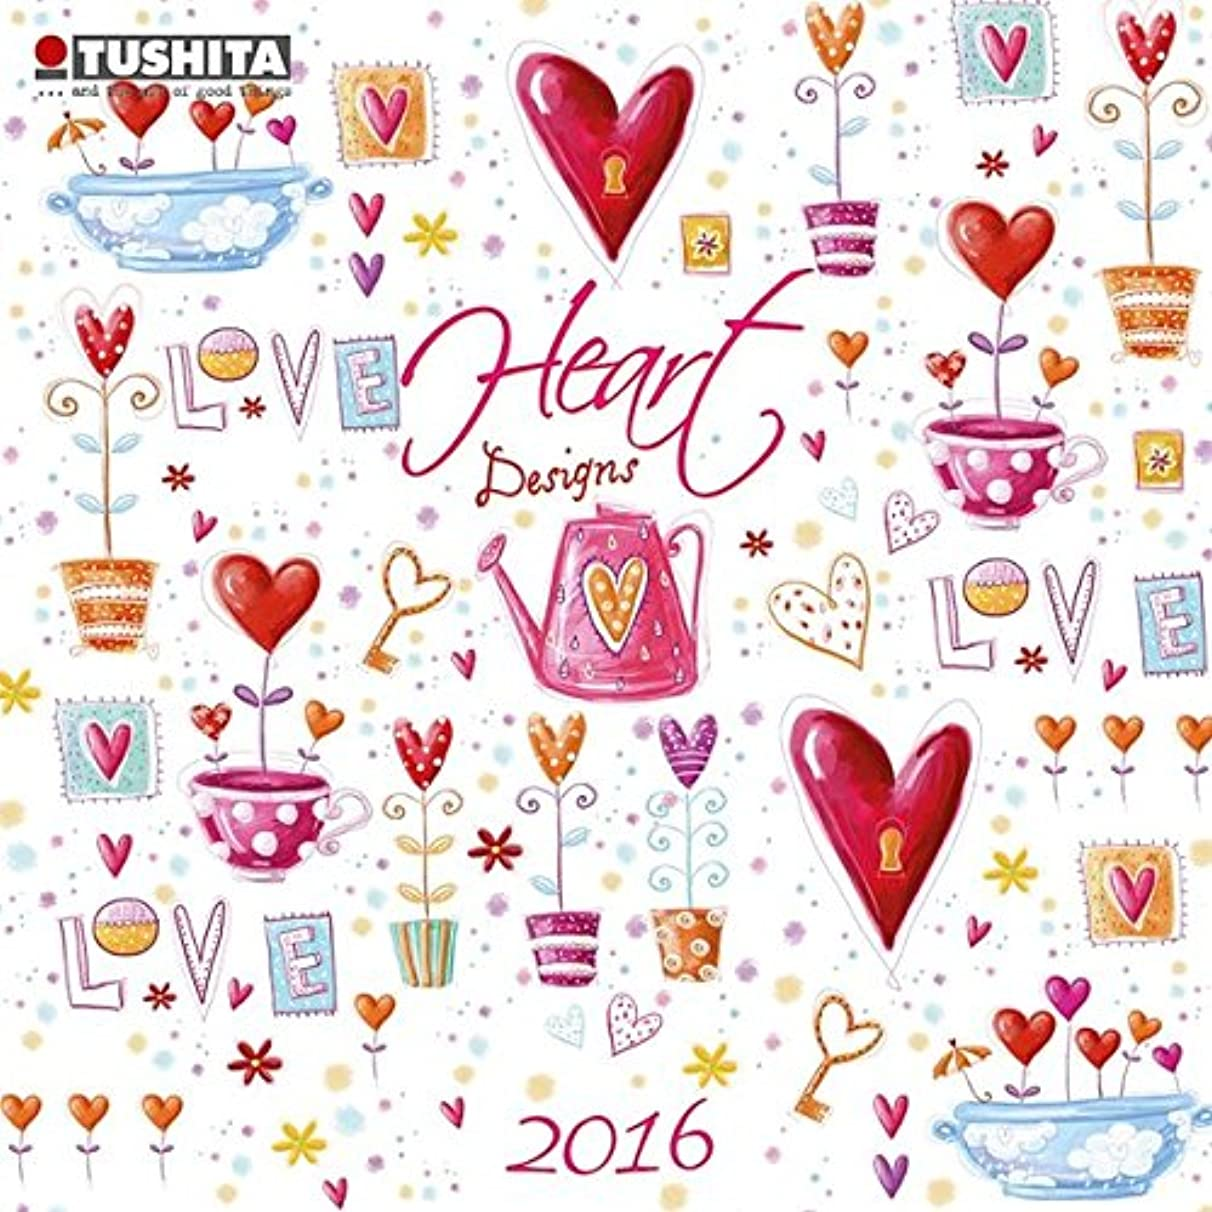 船尾免疫佐賀Heart Design 2016 (Mini Calendars)